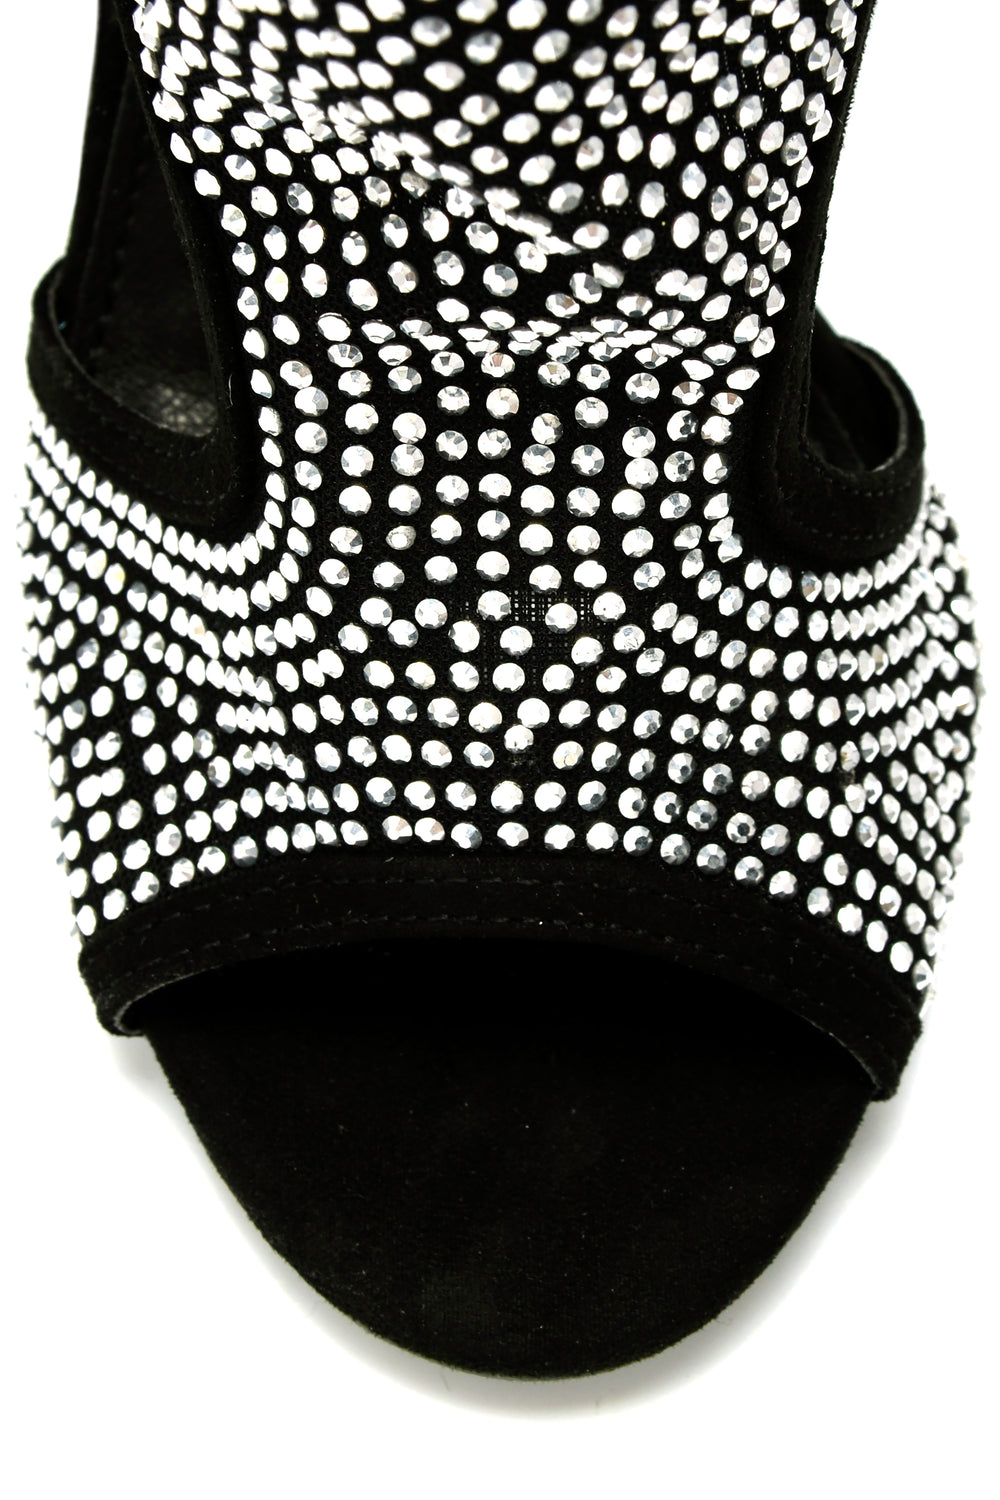 Starry Eyed Bootie - Black